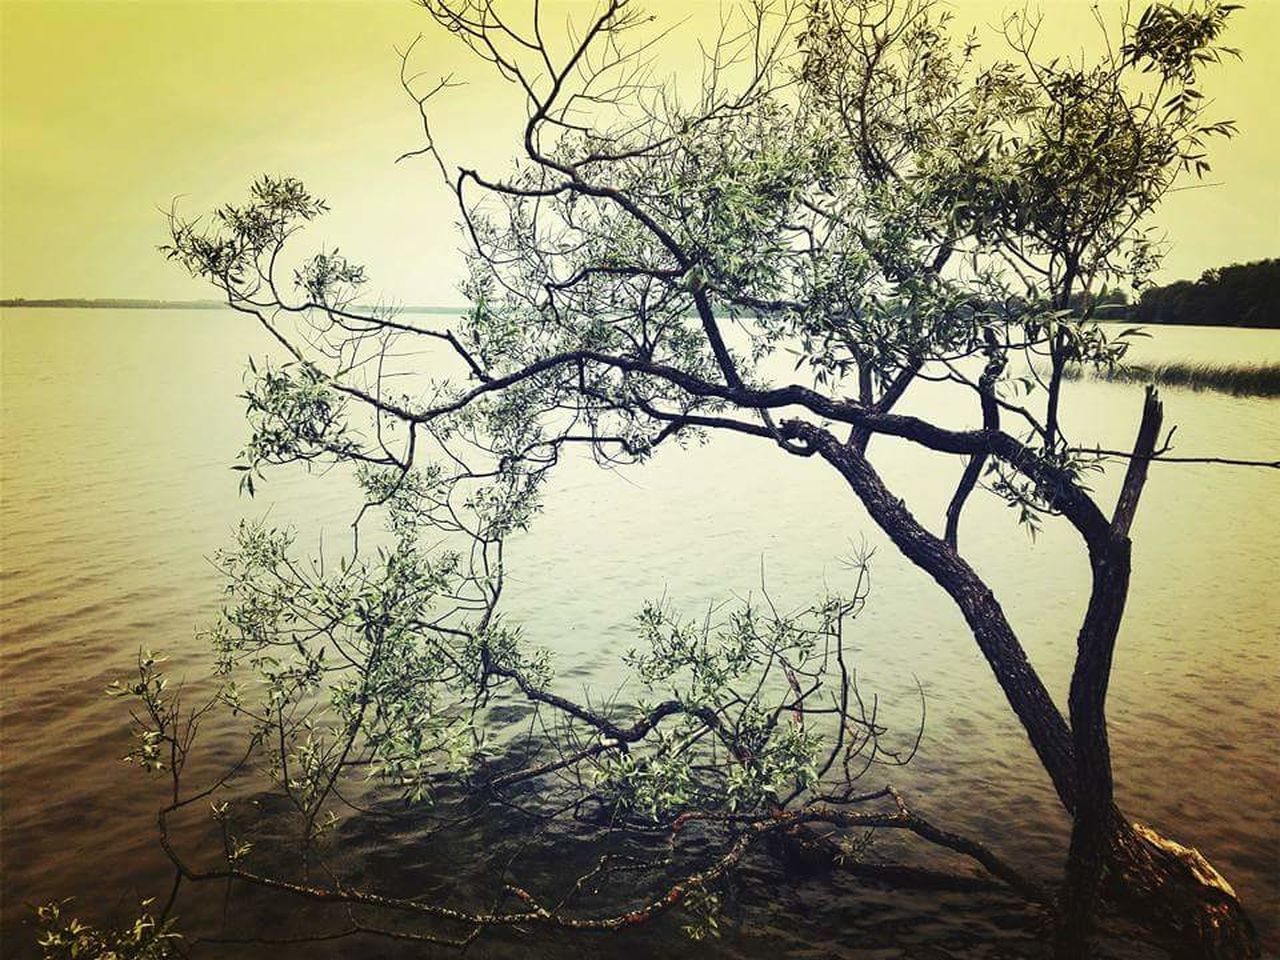 water, nature, tree, tranquility, lake, beauty in nature, branch, scenics, tranquil scene, outdoors, no people, sky, landscape, day